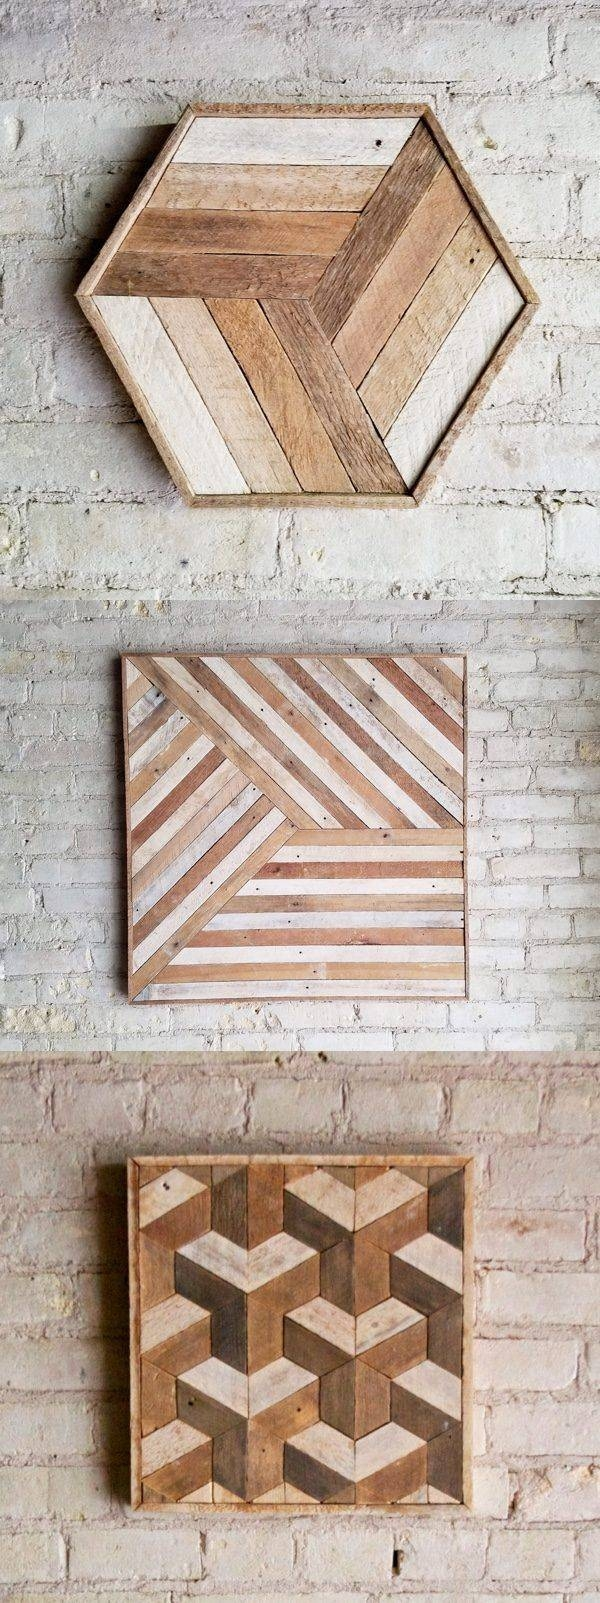 Best 25+ Wood Wall Art Ideas On Pinterest | Wood Art, Geometric Throughout Most Popular Tall Wall Art Decor (View 4 of 20)